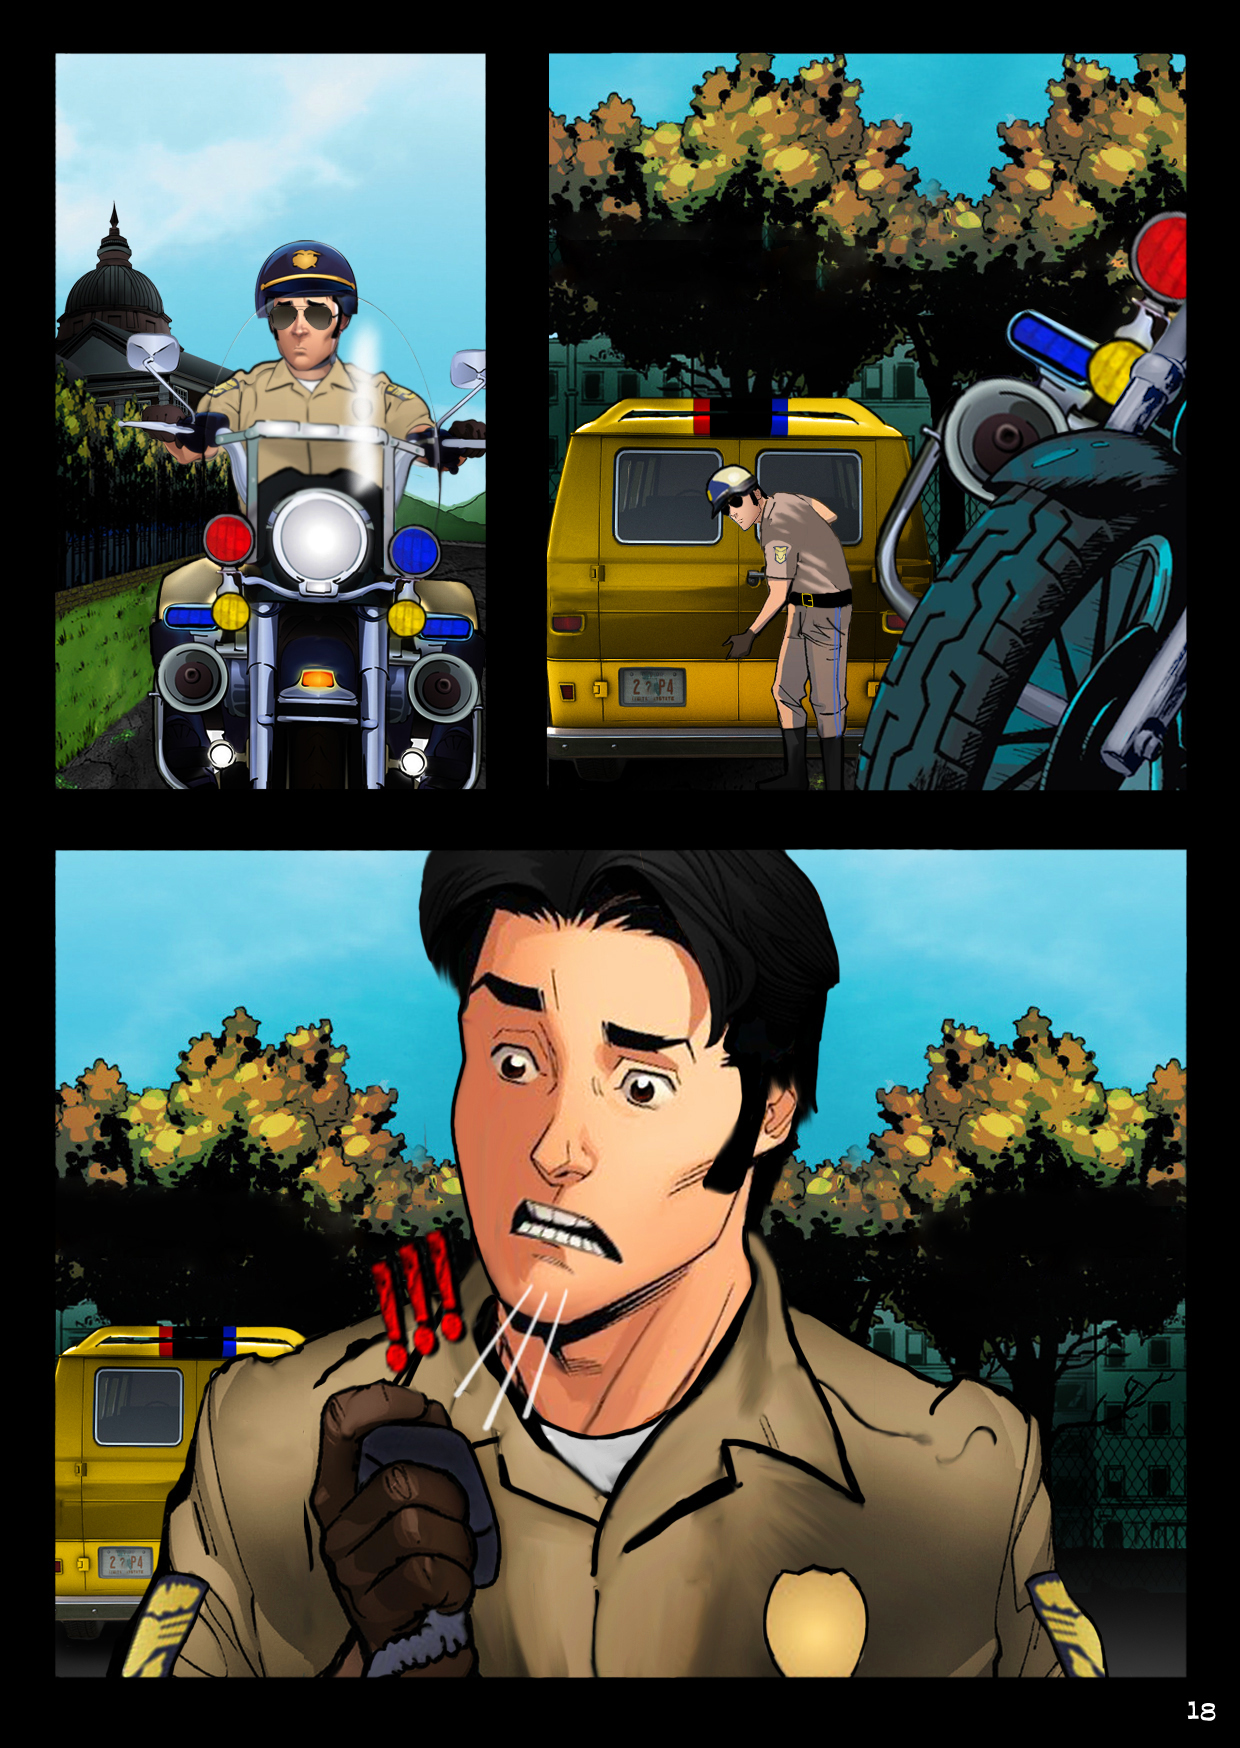 A handsome motorcycle cop spots Billy's van outside the asylum and realizes something is very wrong.